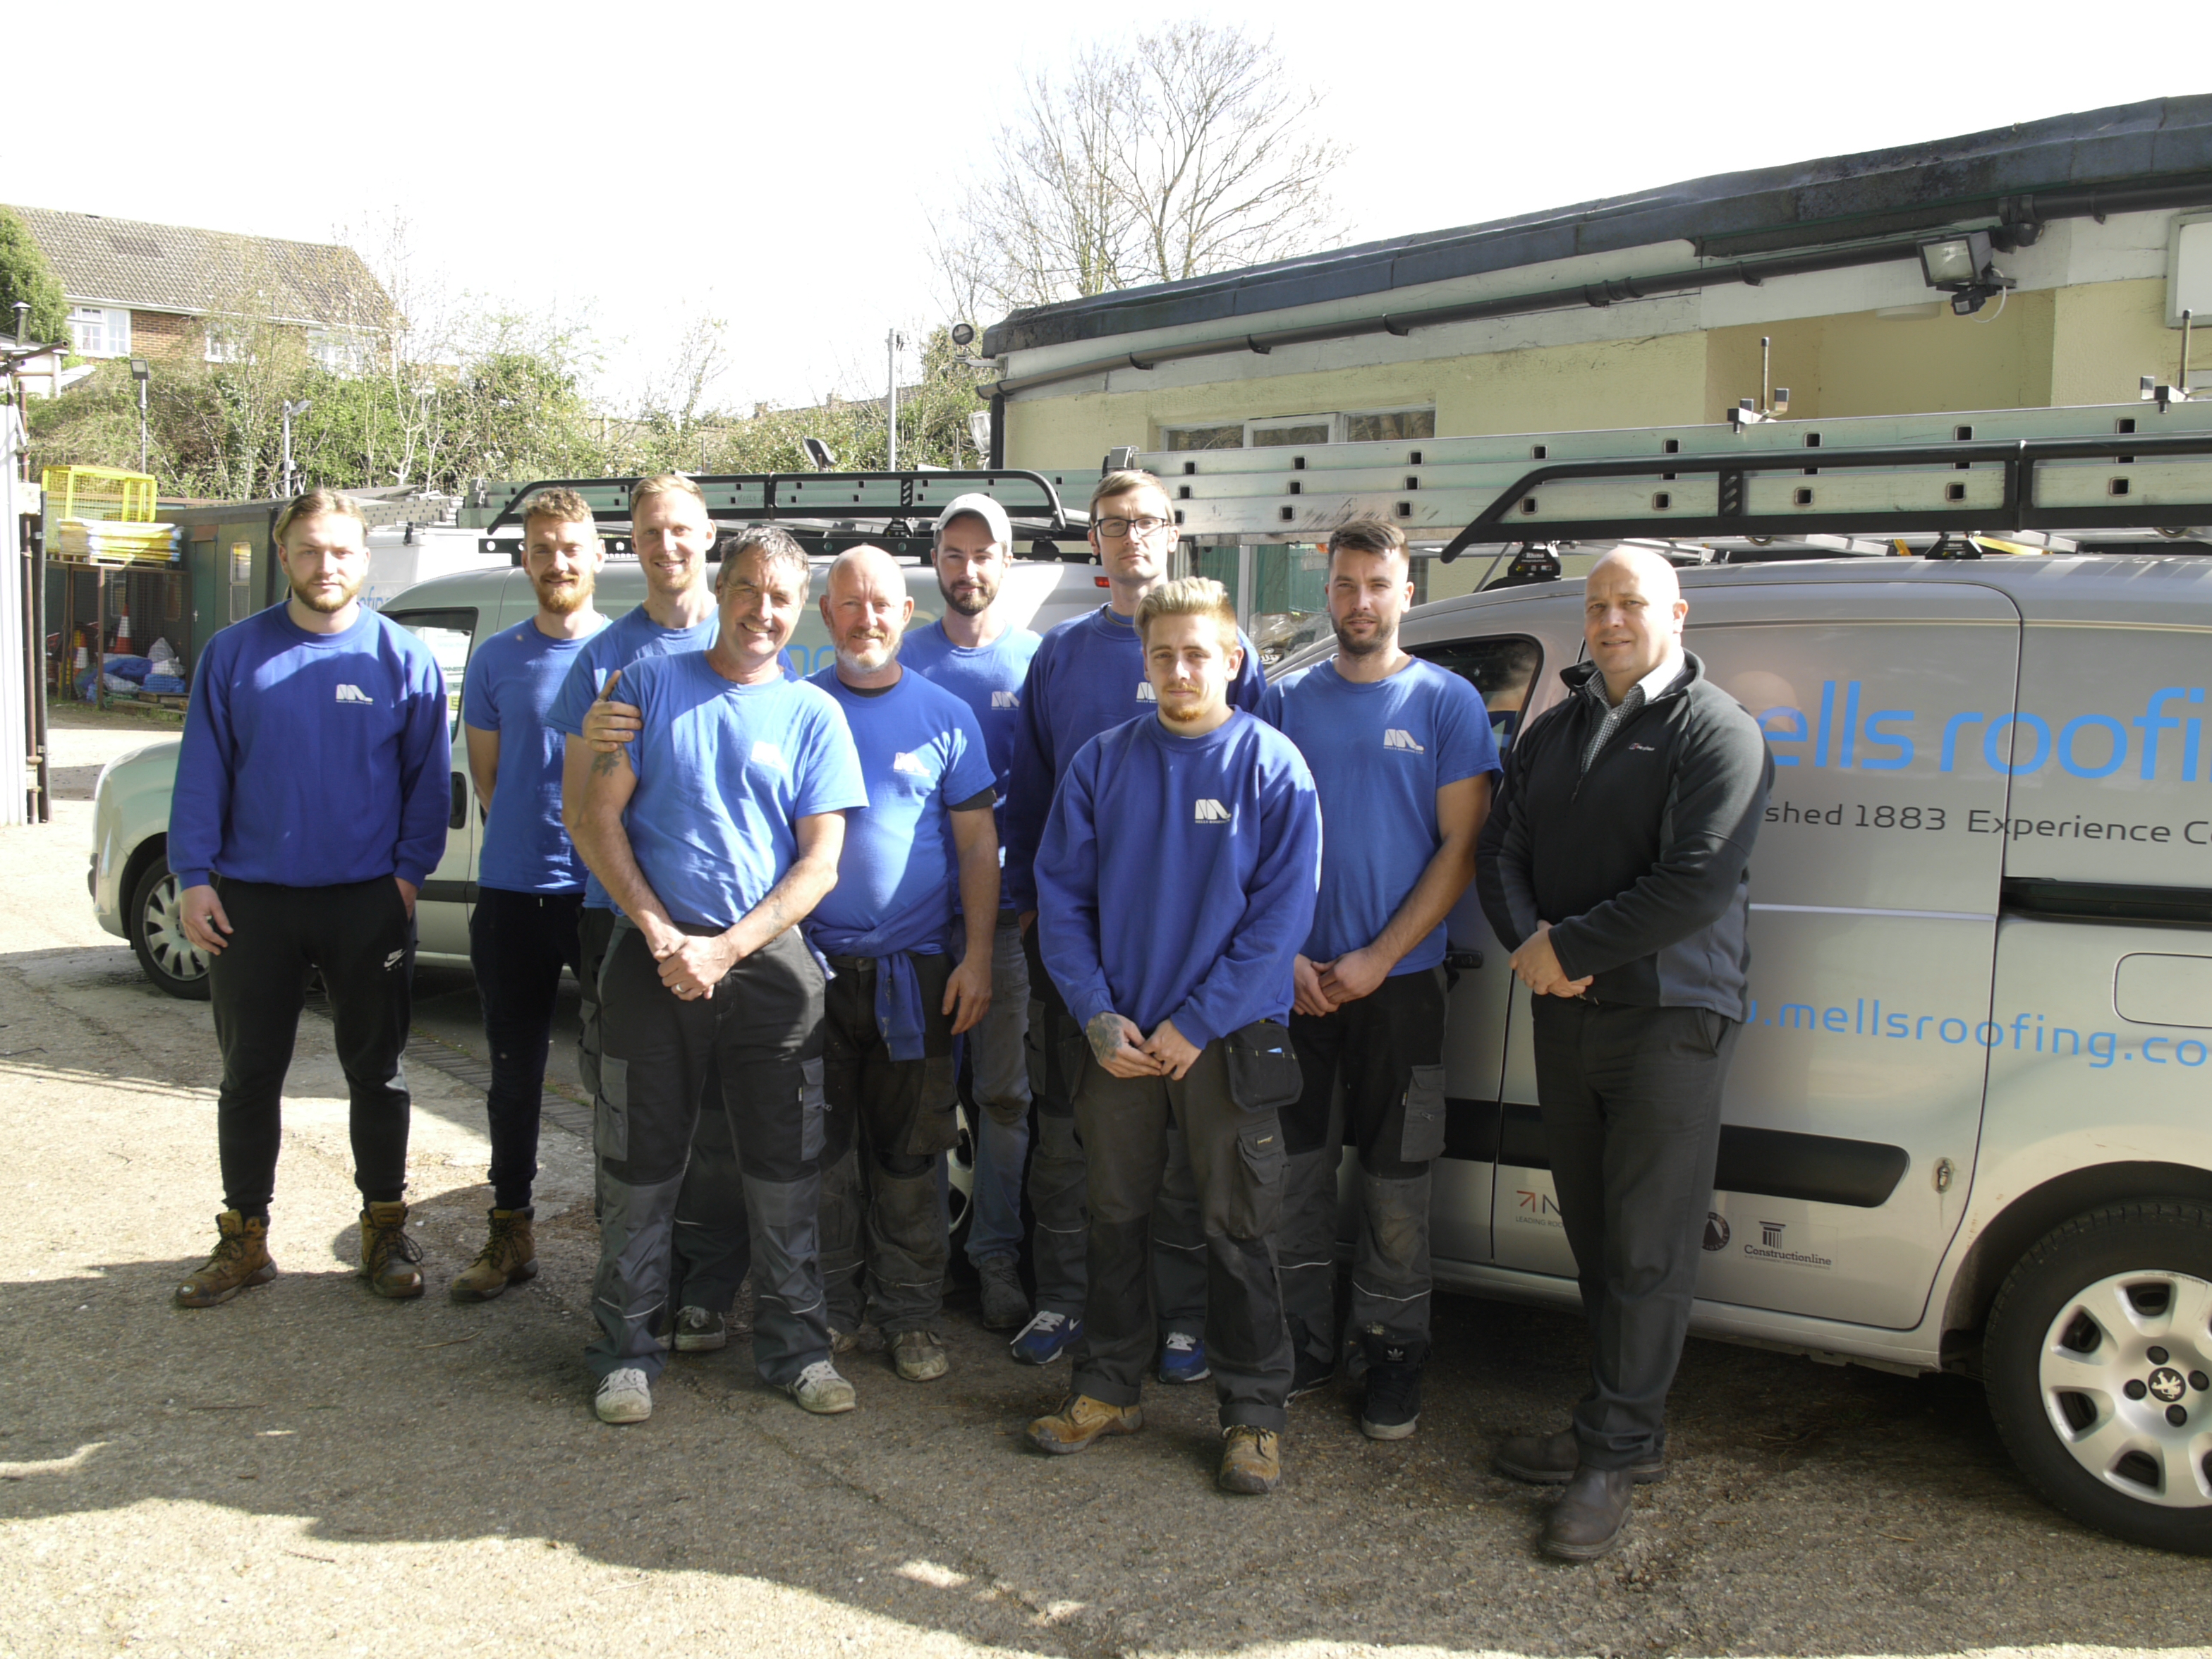 Mells Roofing team